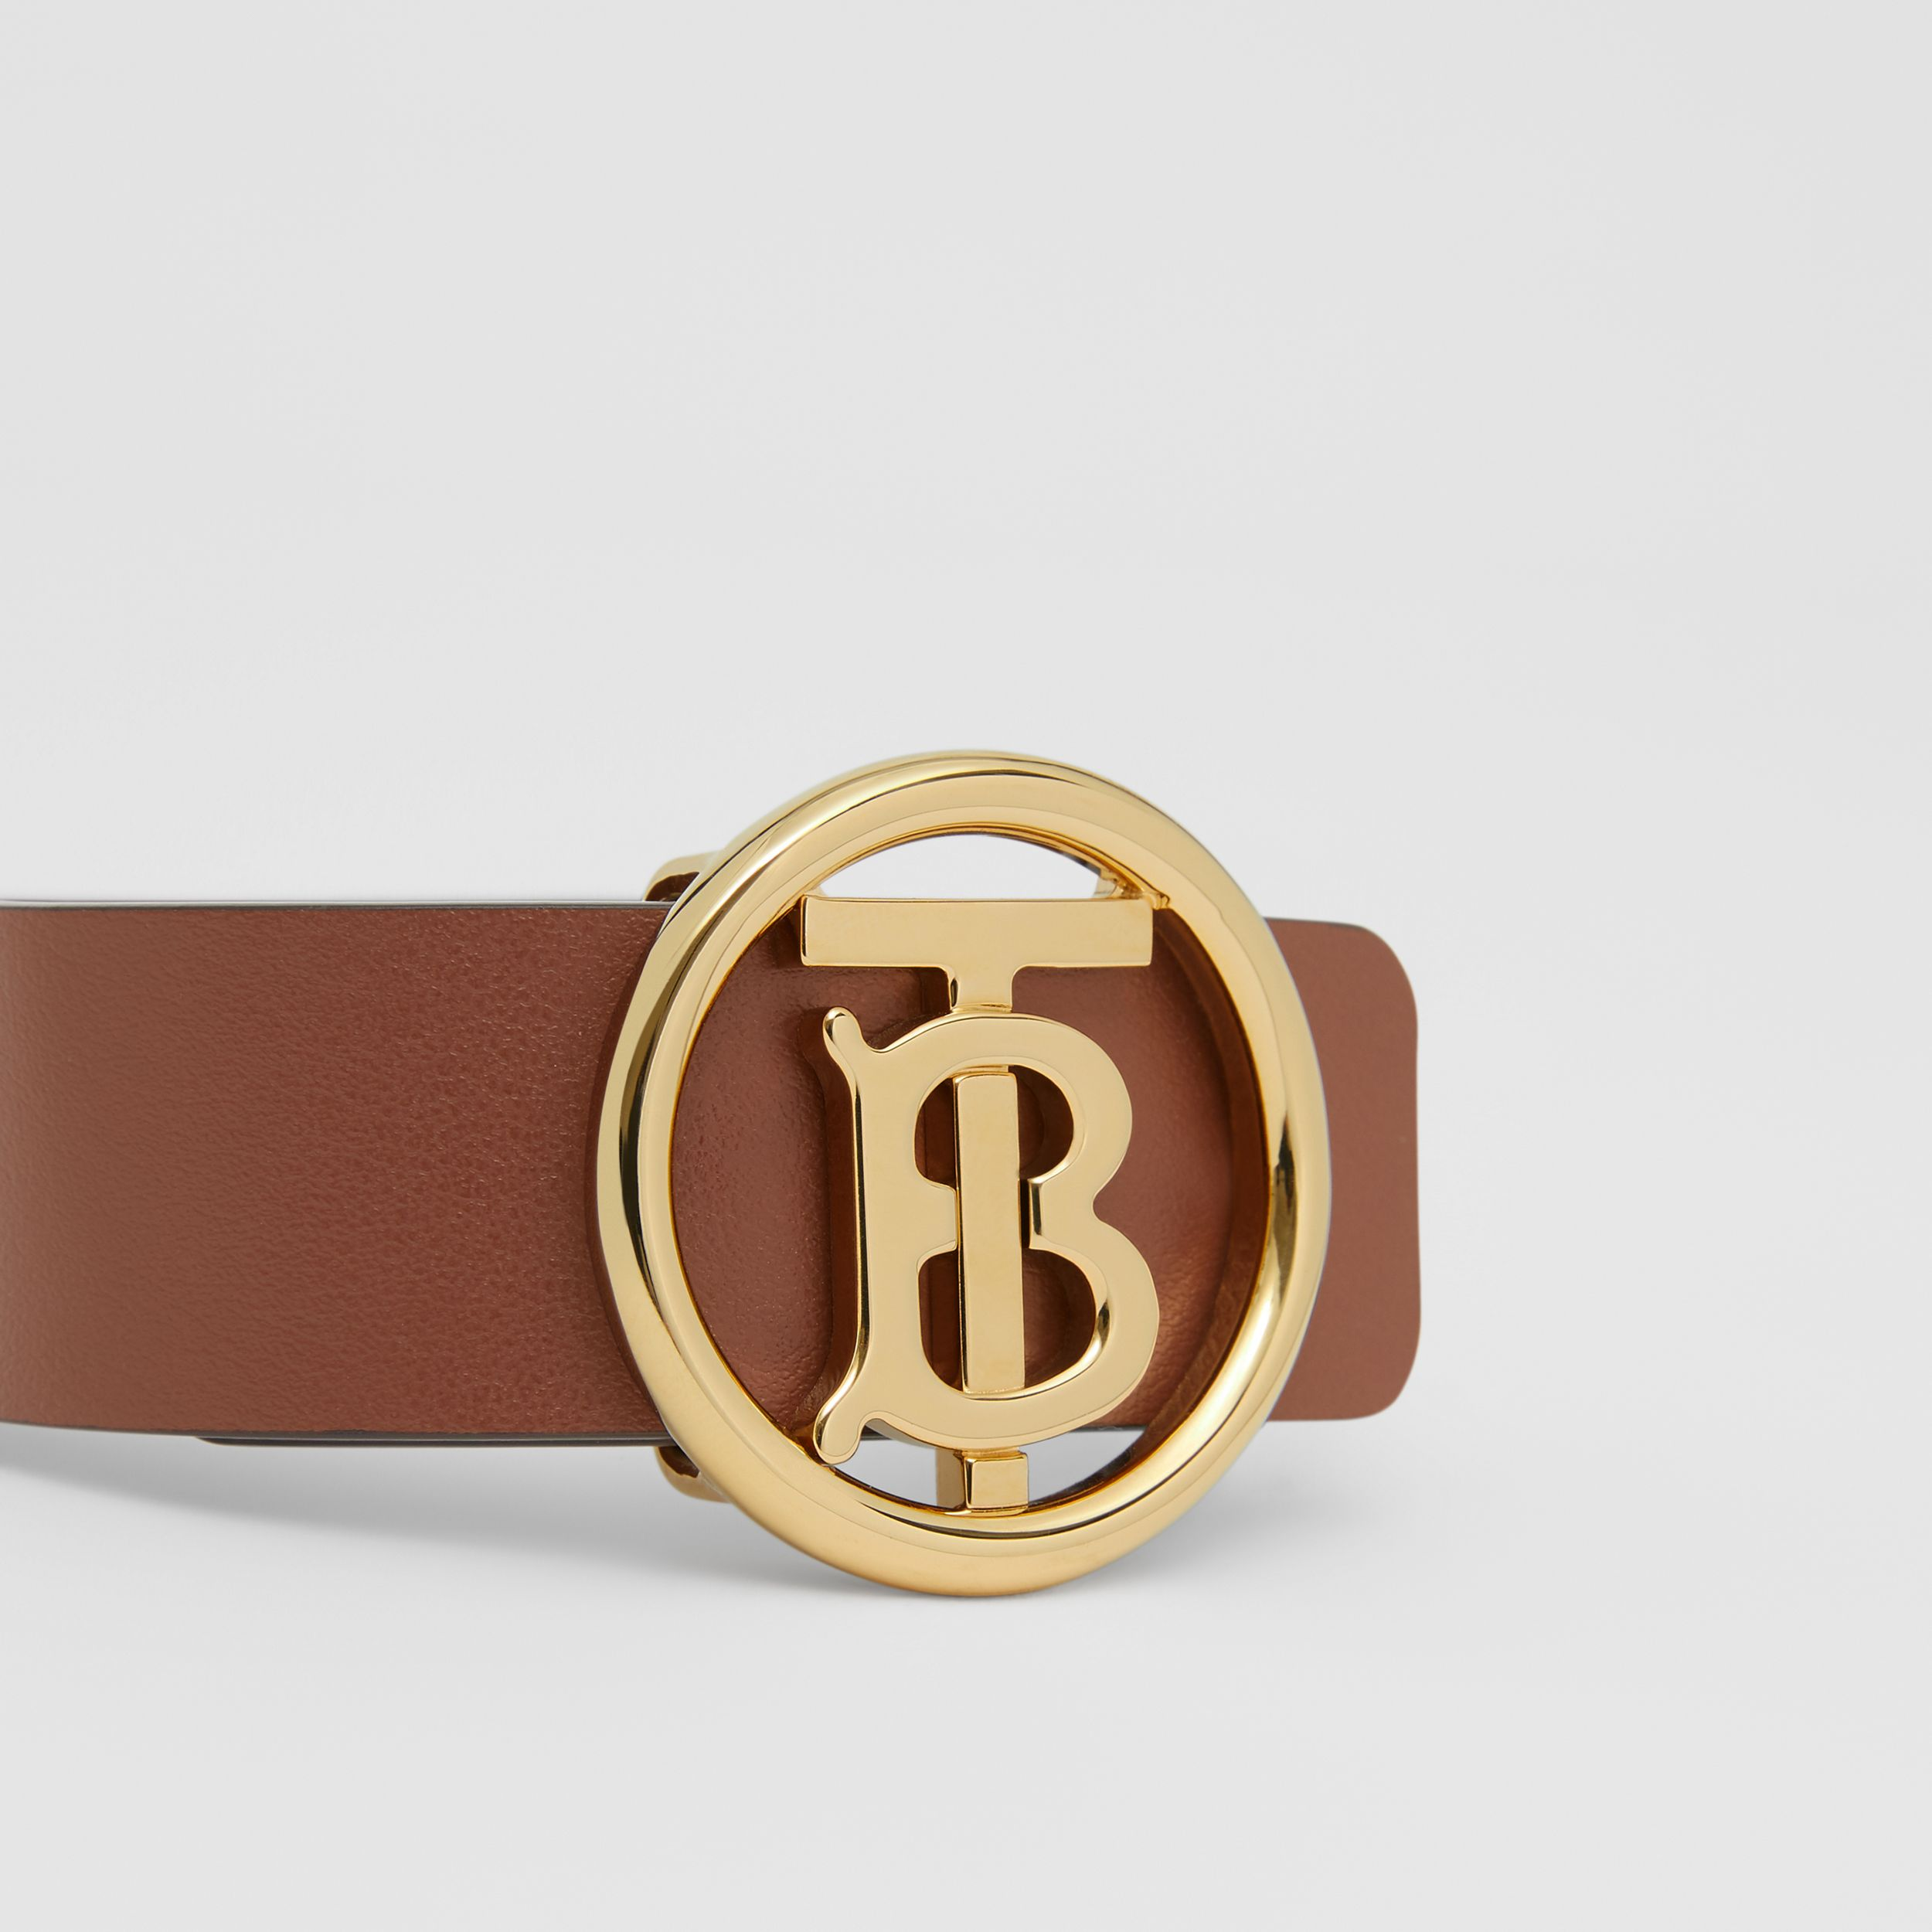 Monogram Motif Leather Bracelet in Tan | Burberry - 2